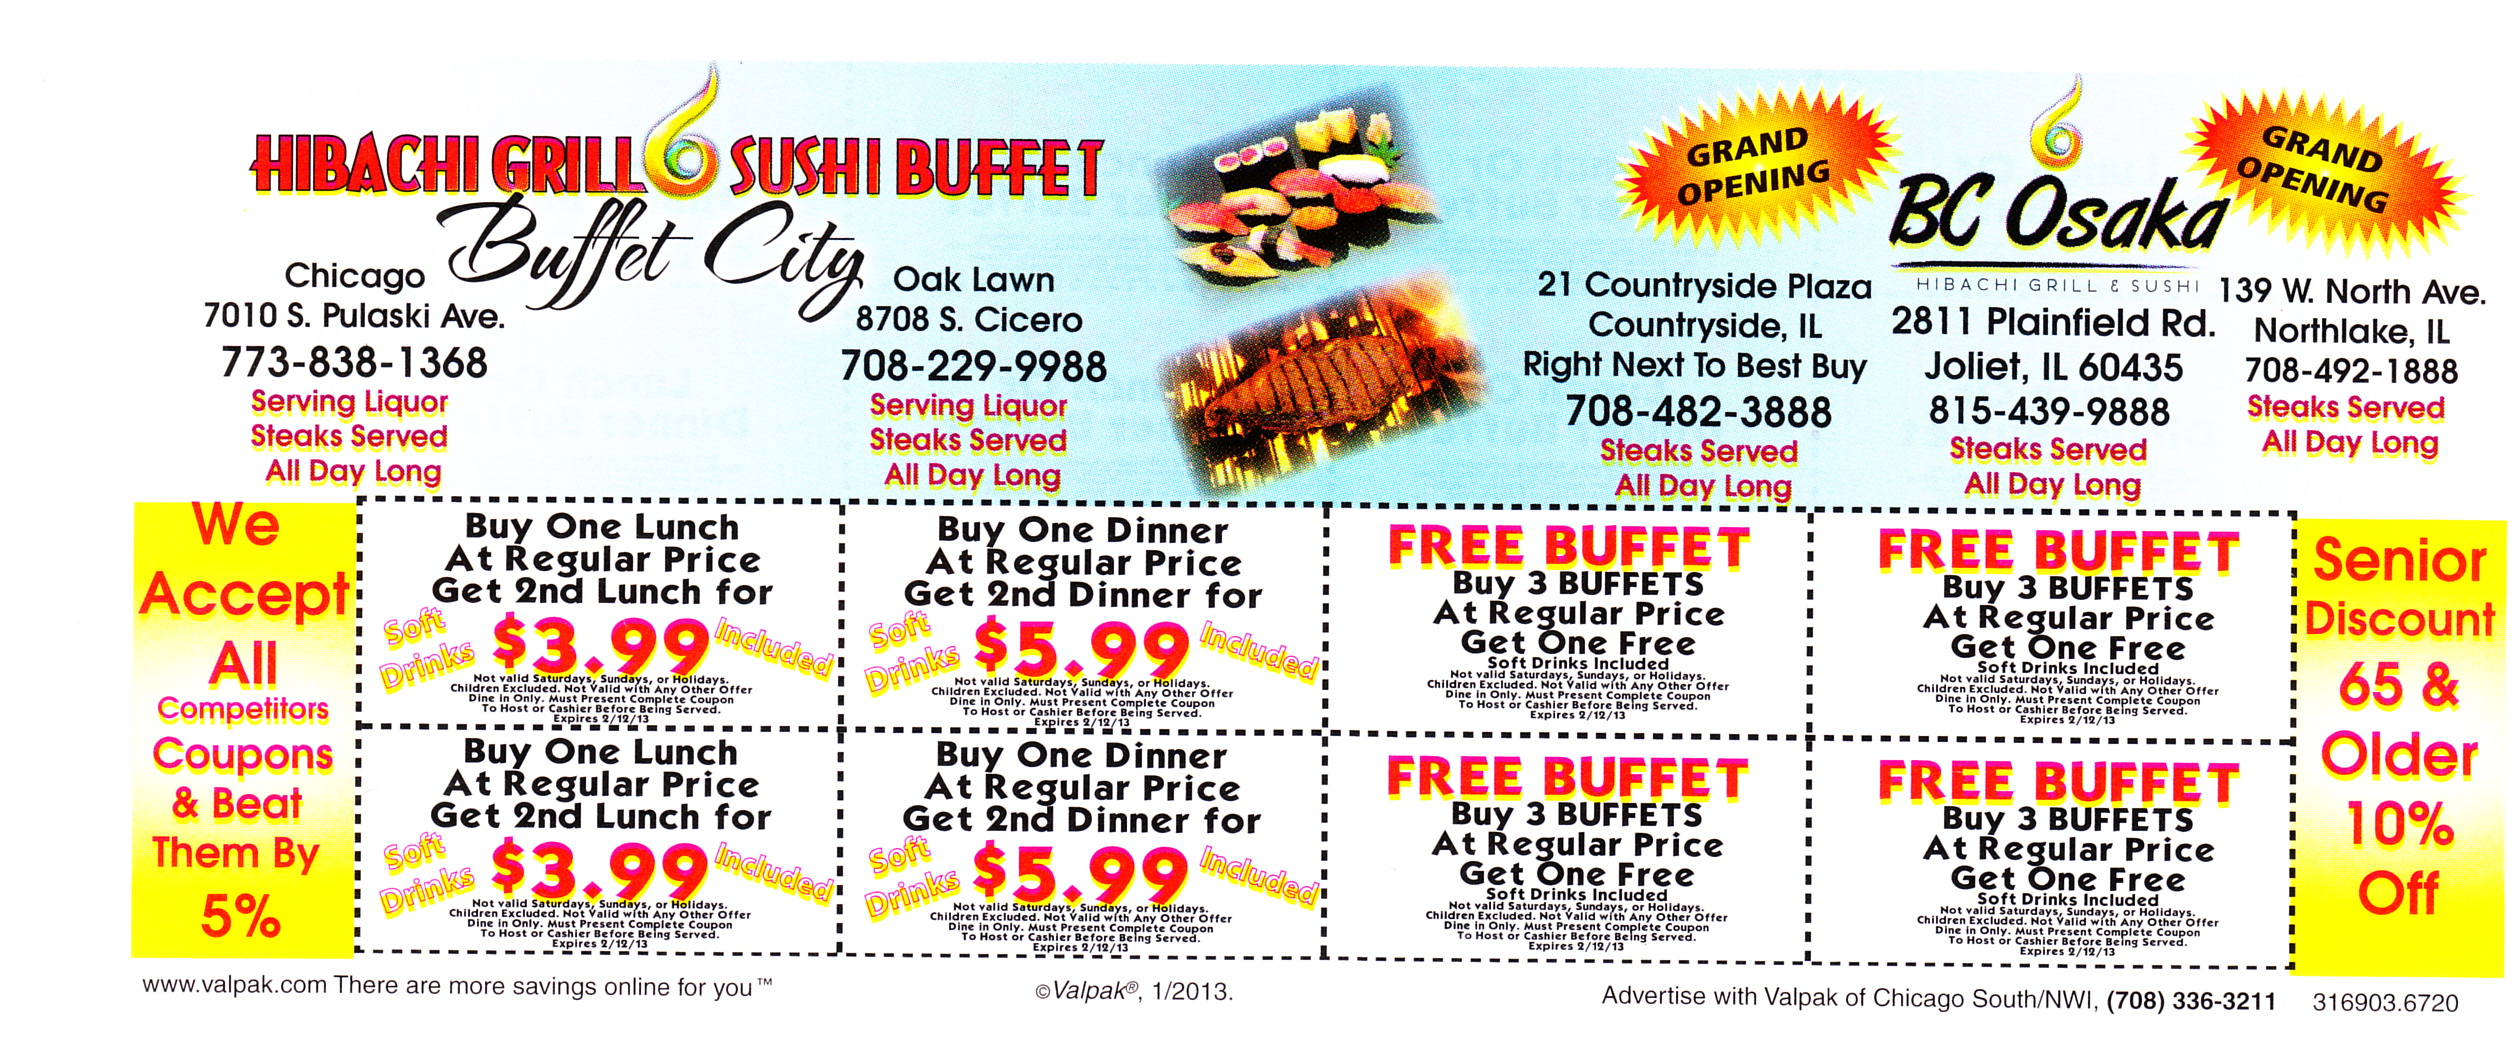 photo regarding Hibachi Grill Supreme Buffet Coupons Printable identify Hibachi grill discount coupons bloomingdale il - Jfk library shop